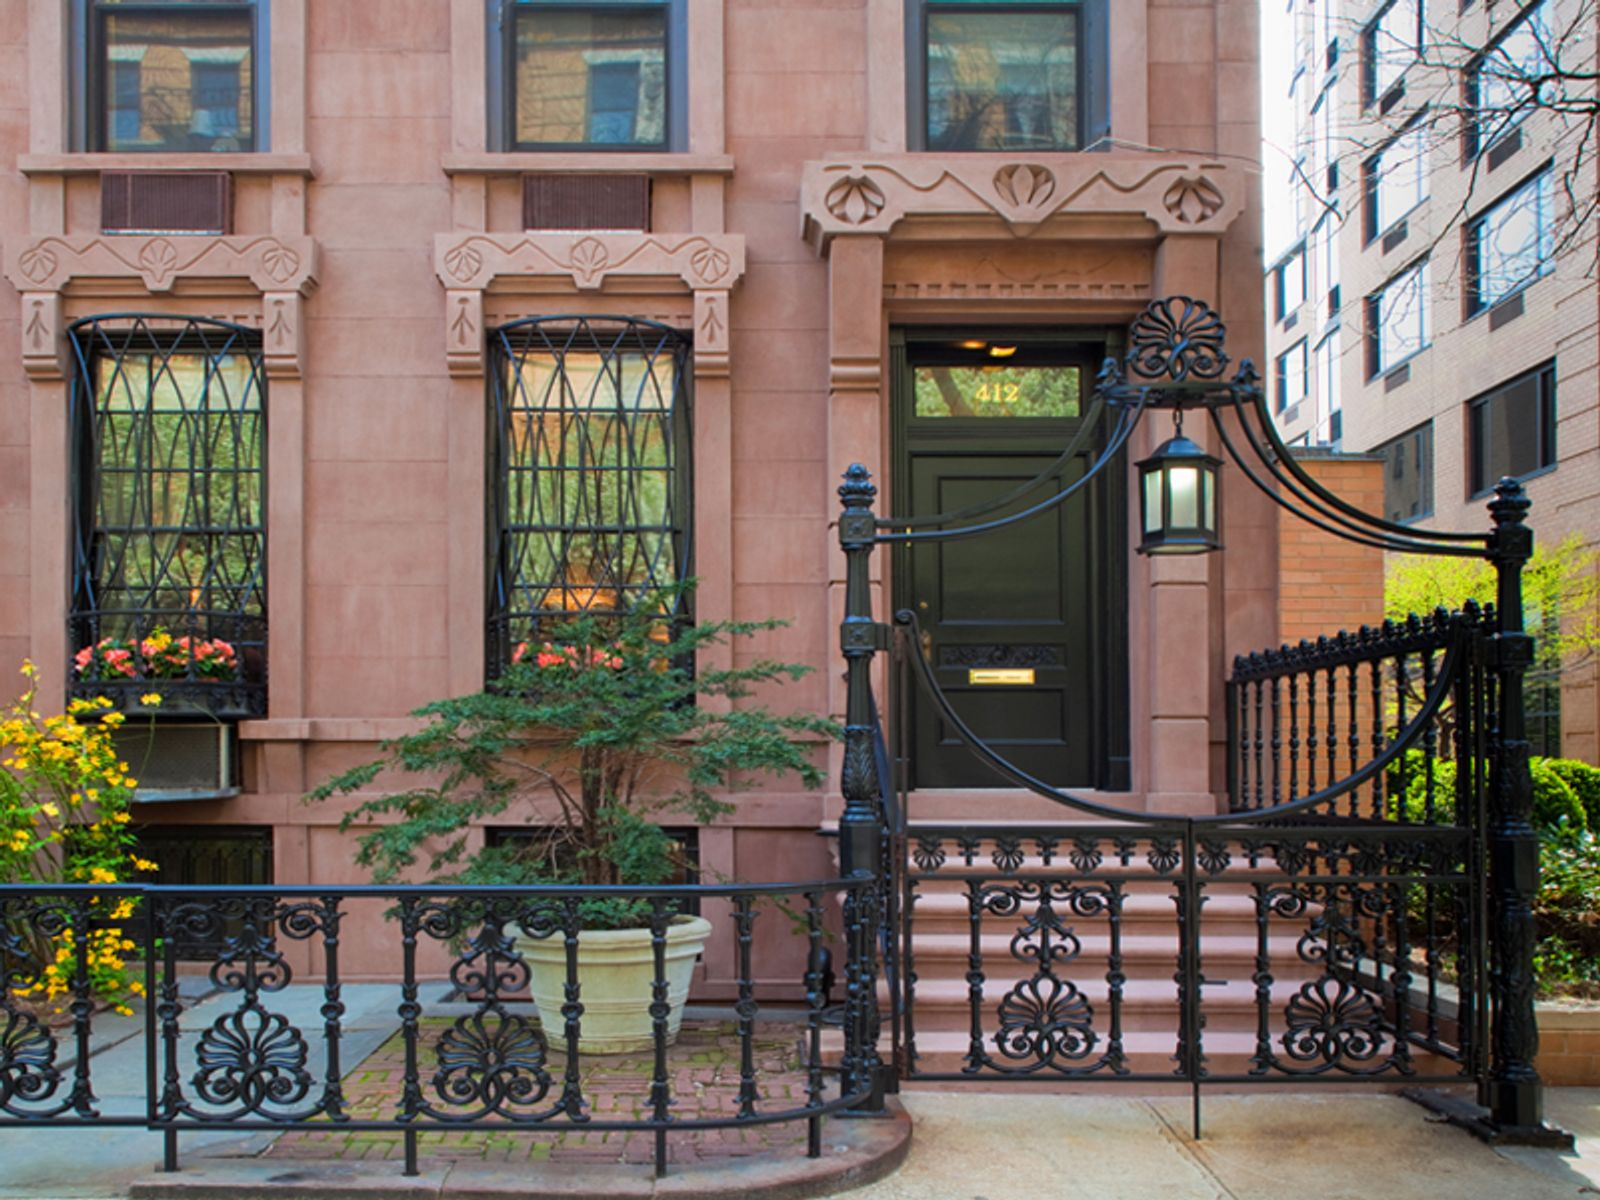 412 East 84th Street, New York NY Townhouse - New York City Real Estate